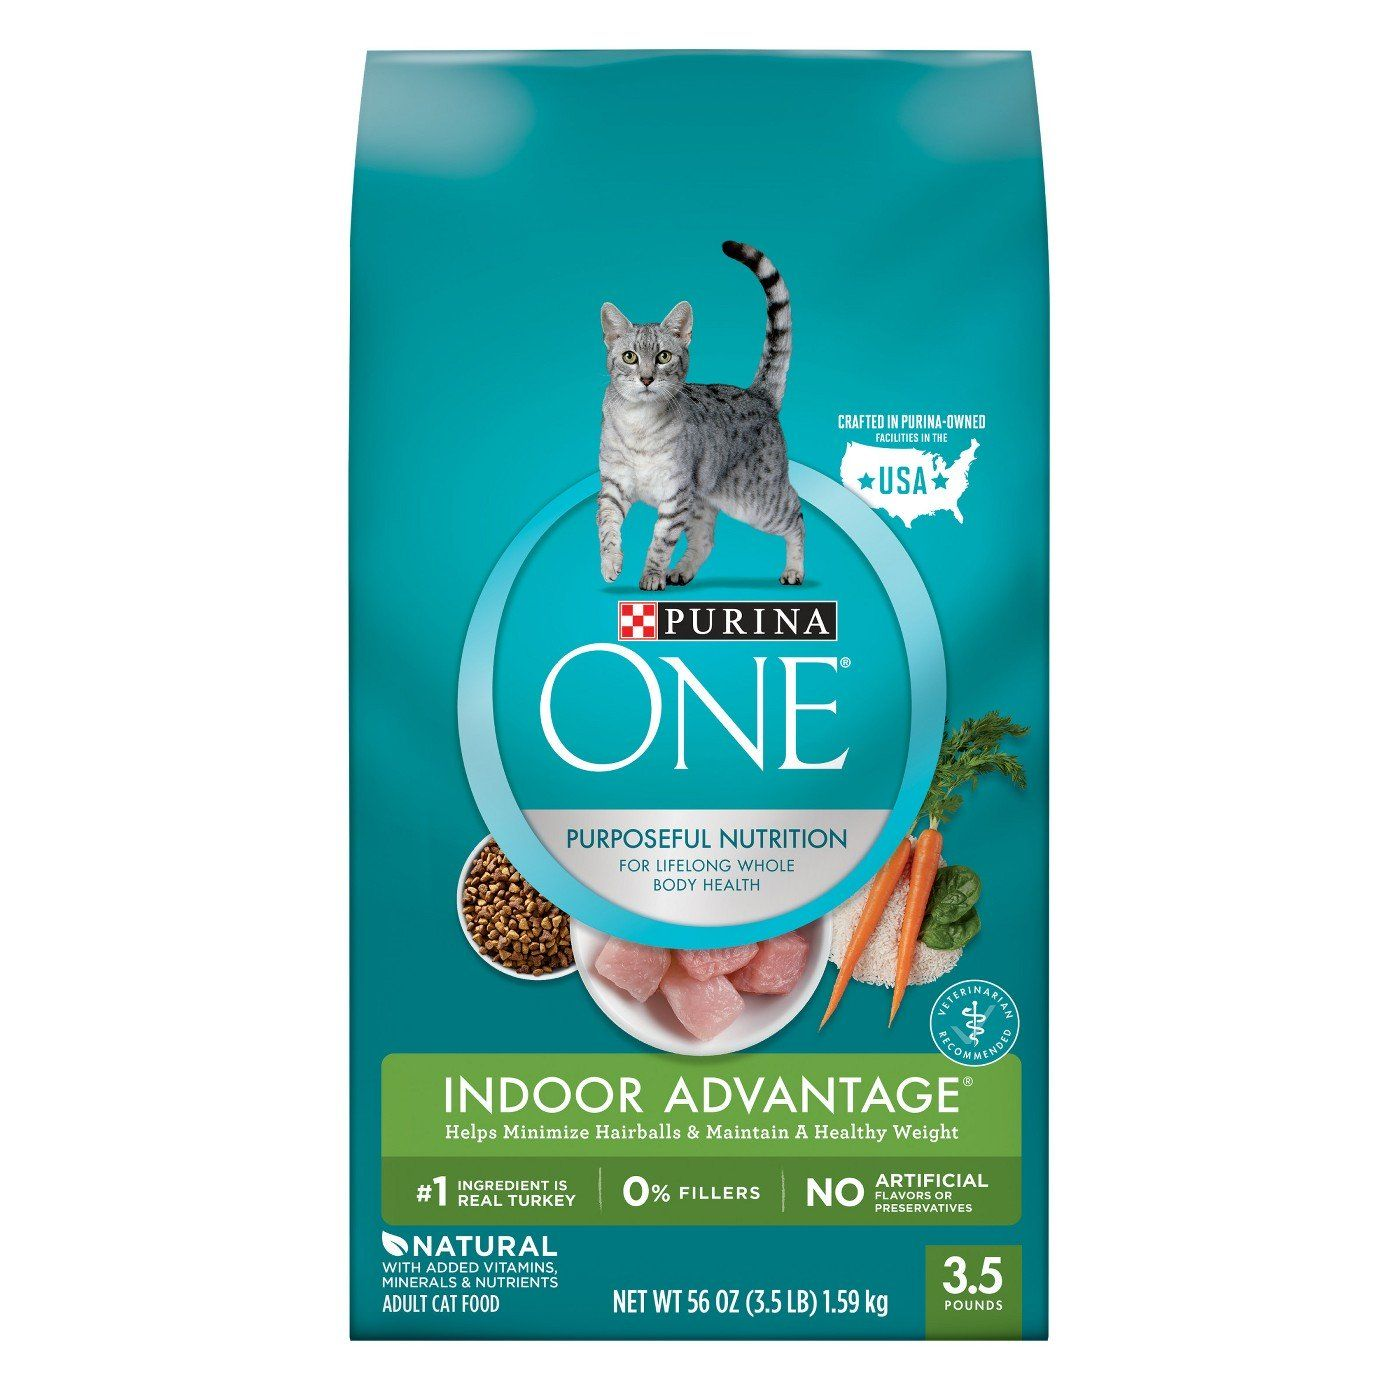 FREE Bag of Purina One Pet Food 247moms Cat food brands